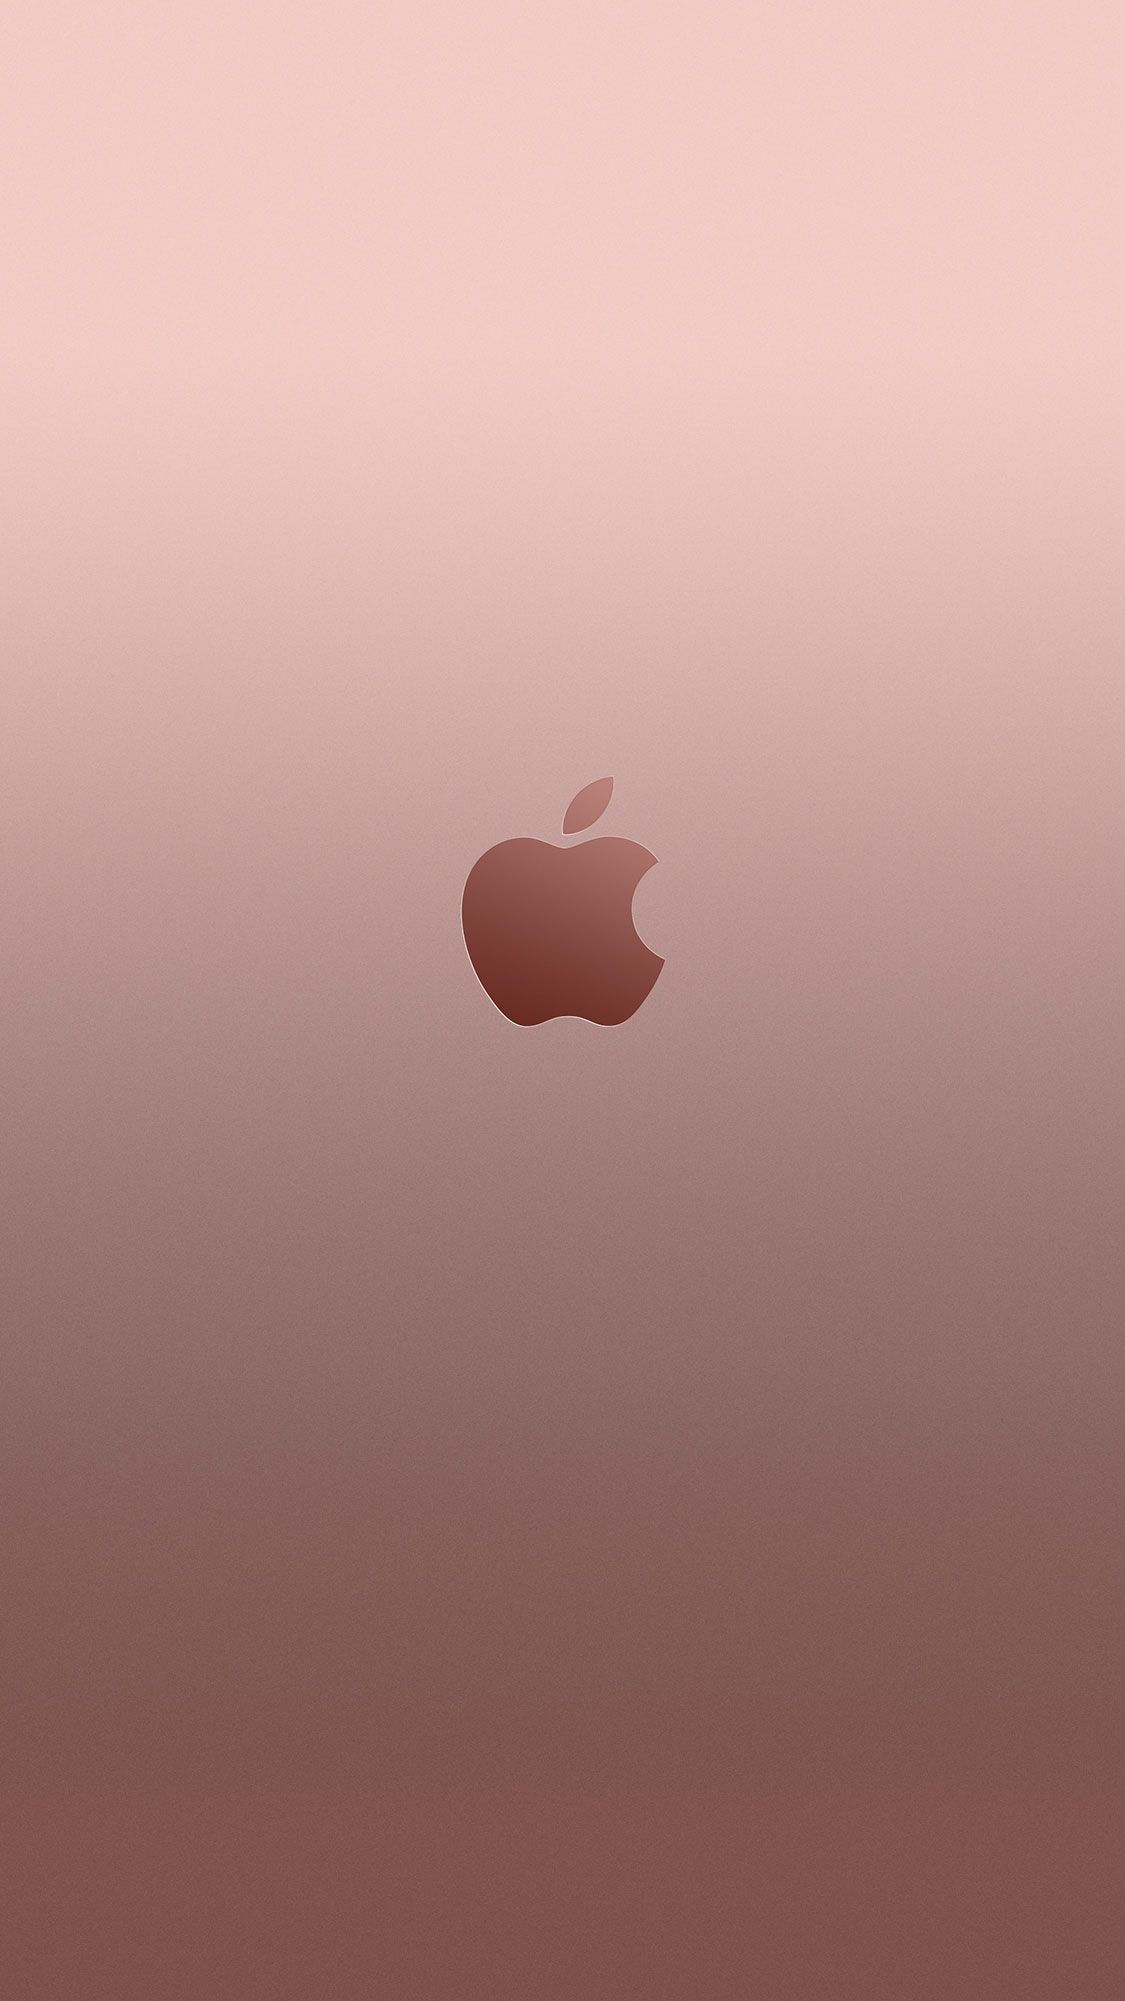 Rose gold iphone wallpaper tumblr - New Iphone 6 Wallpapers Backgrounds In Hd Quality